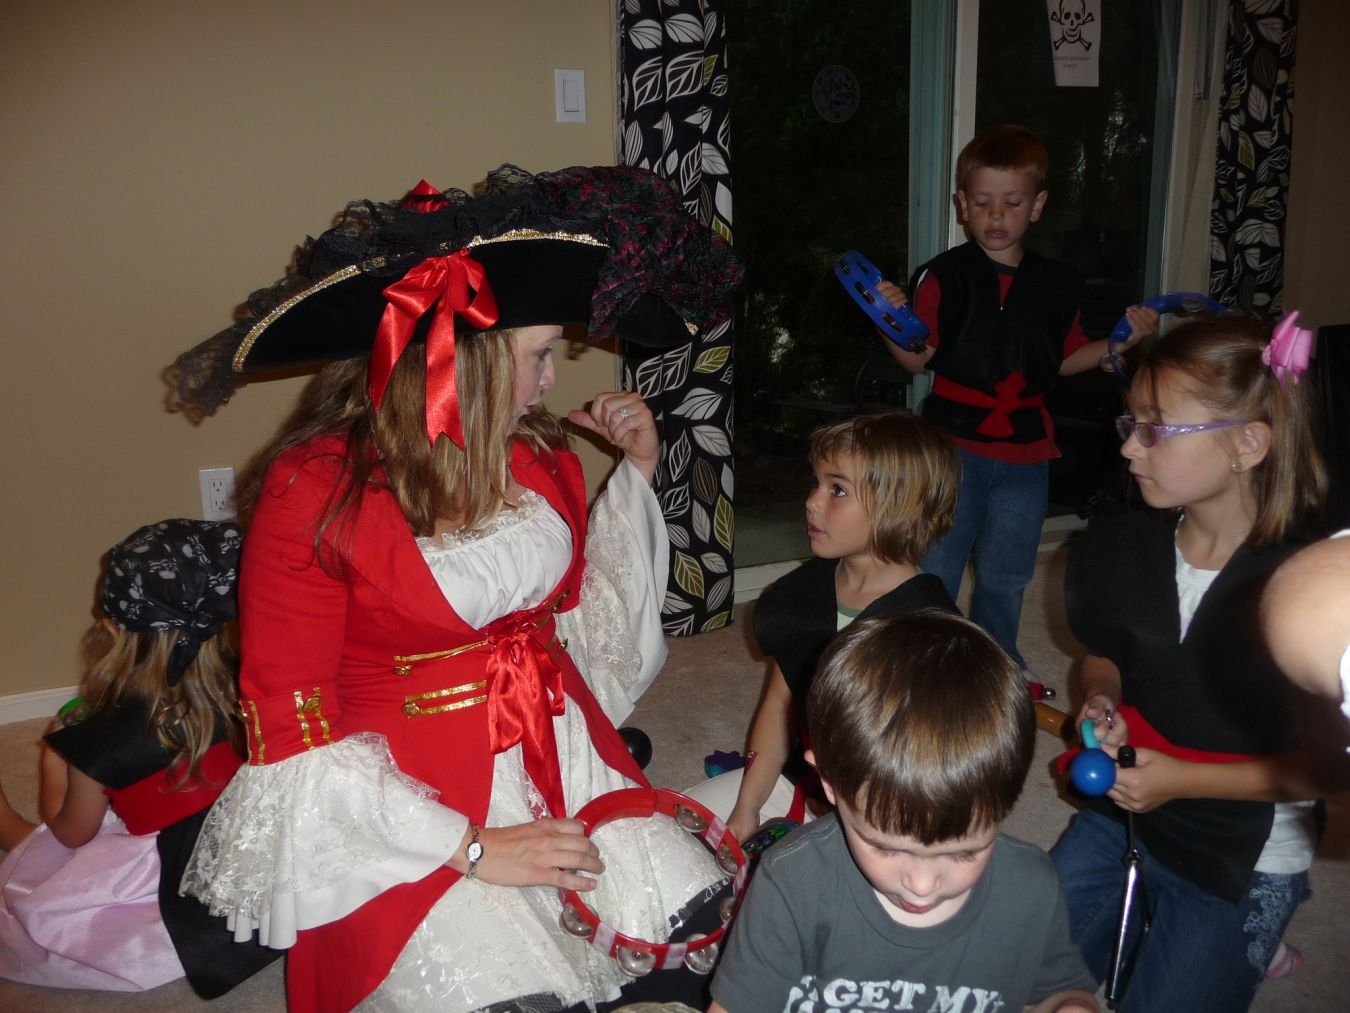 Kristin Entertaining at a Pirate Party